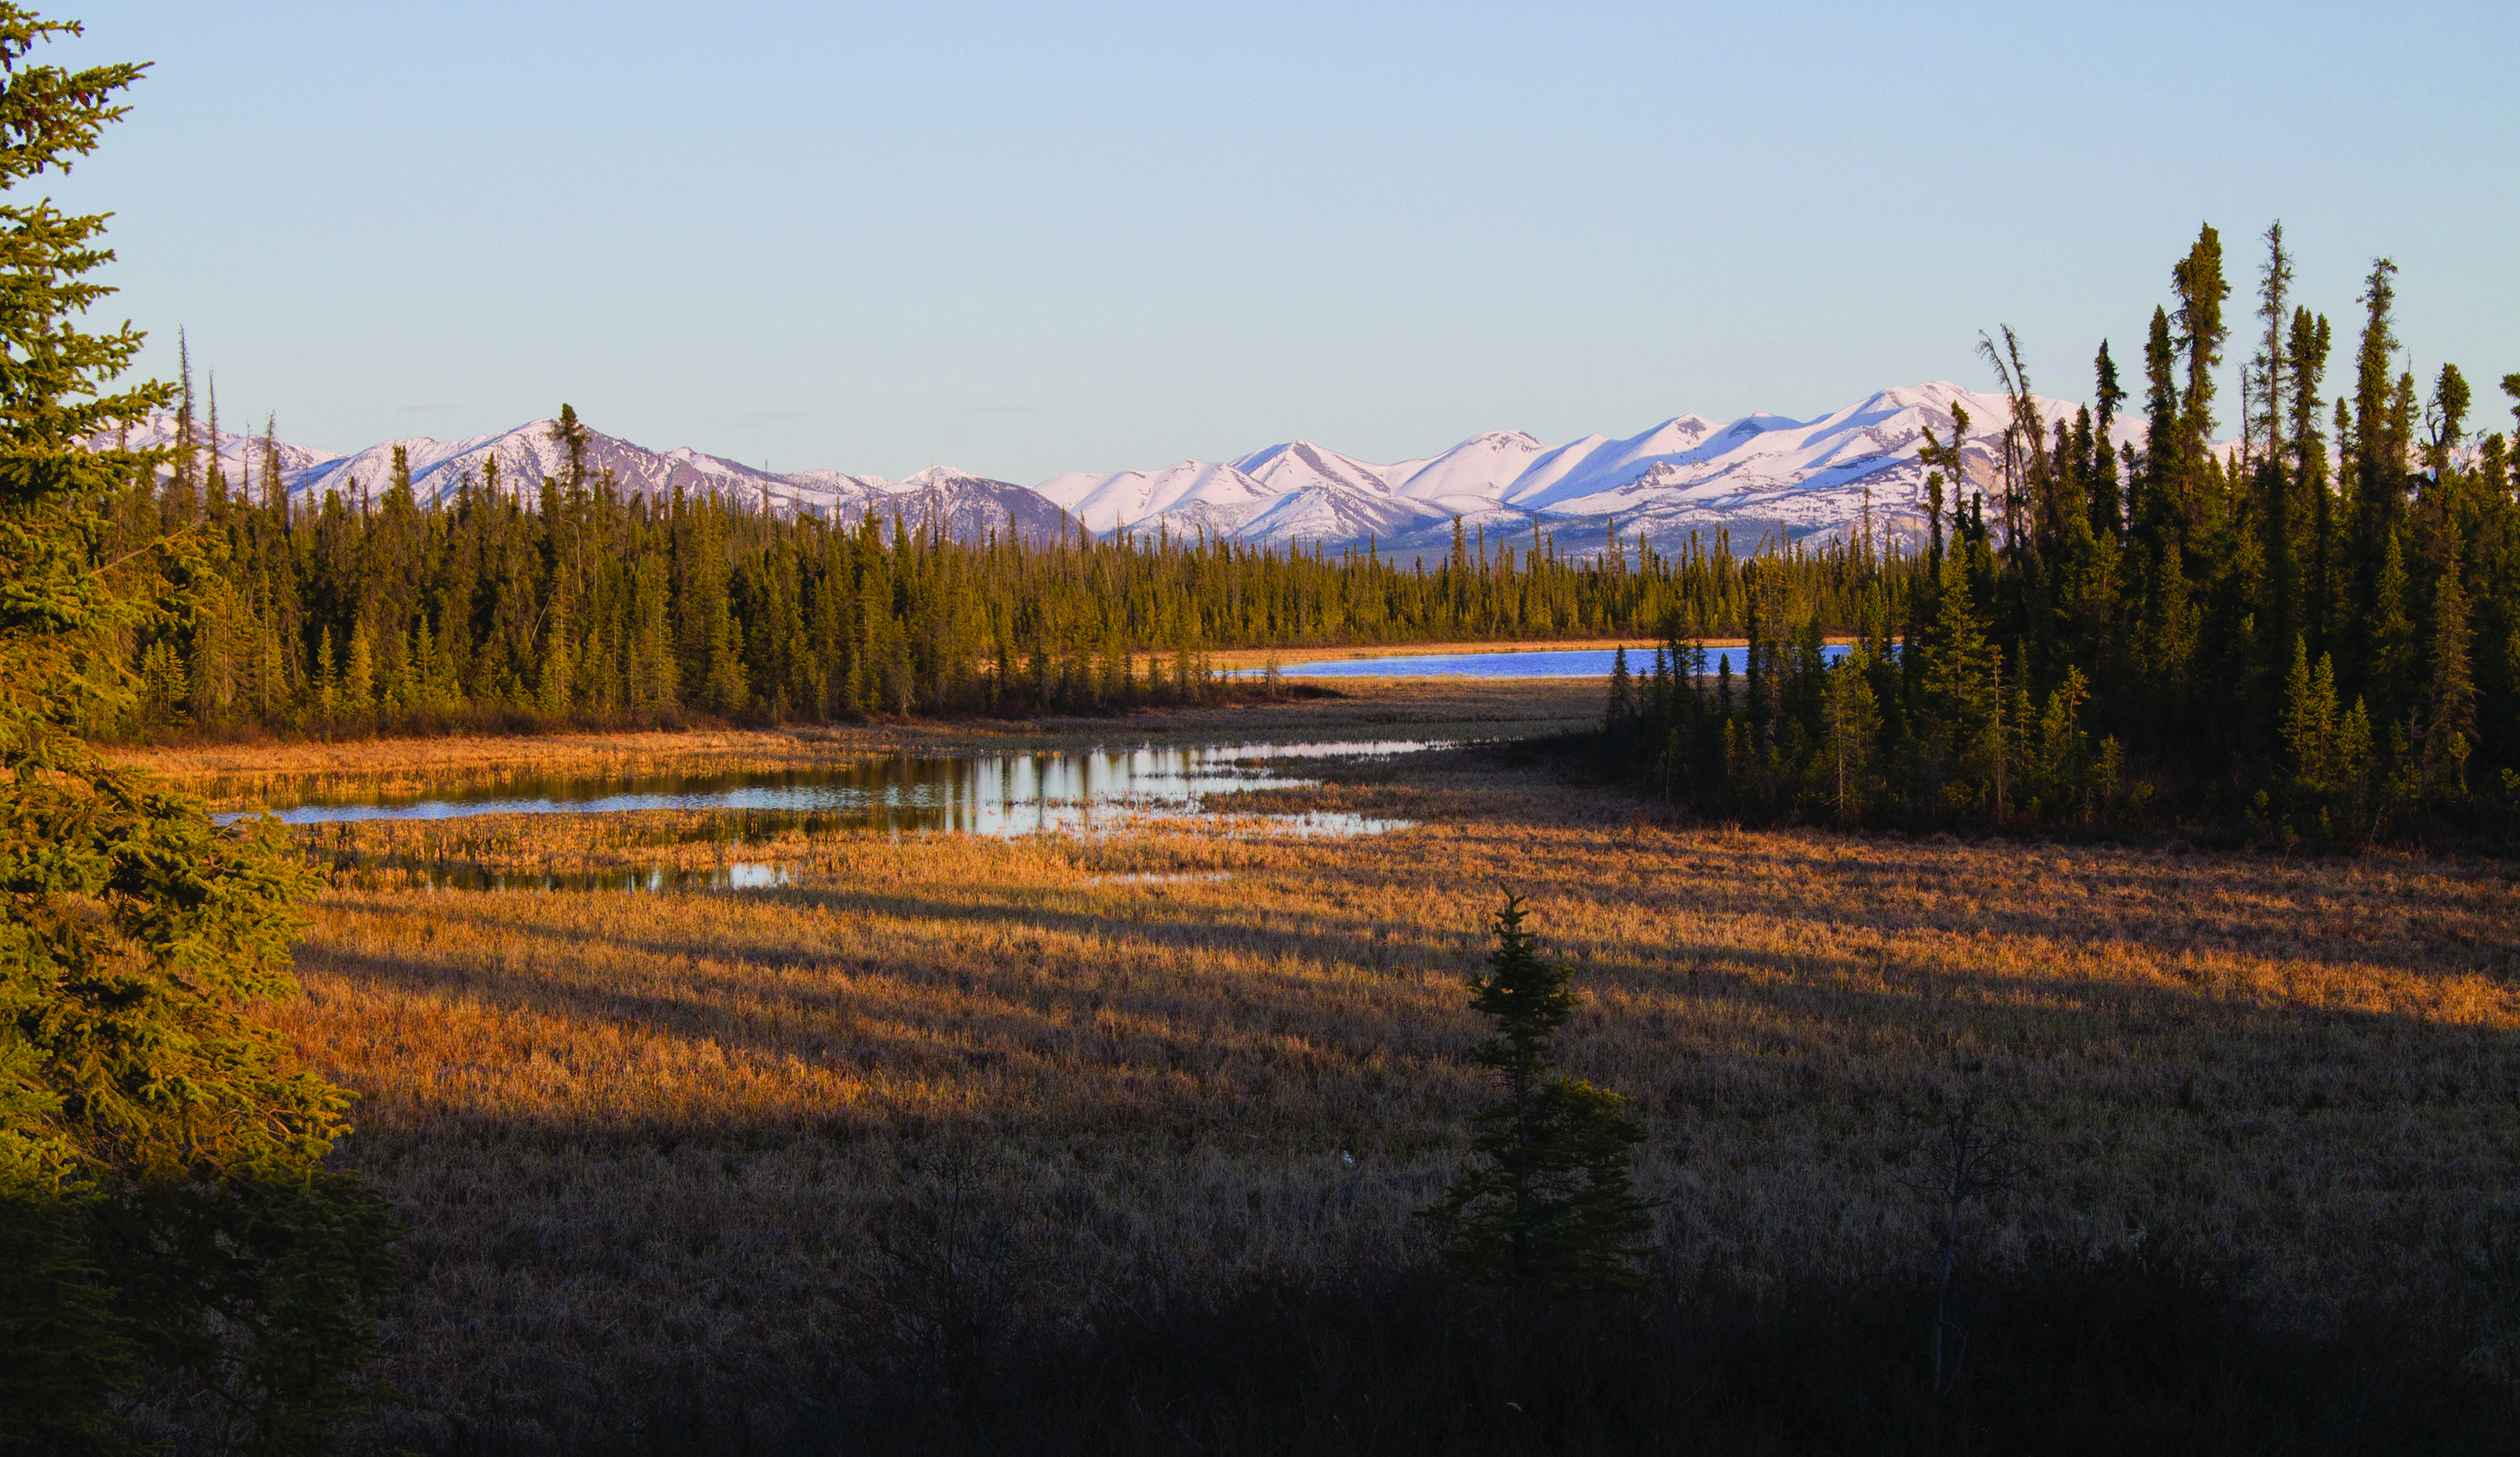 Picture of the Ahtna Region - Image Courtesy of Ahtna, Incorporated